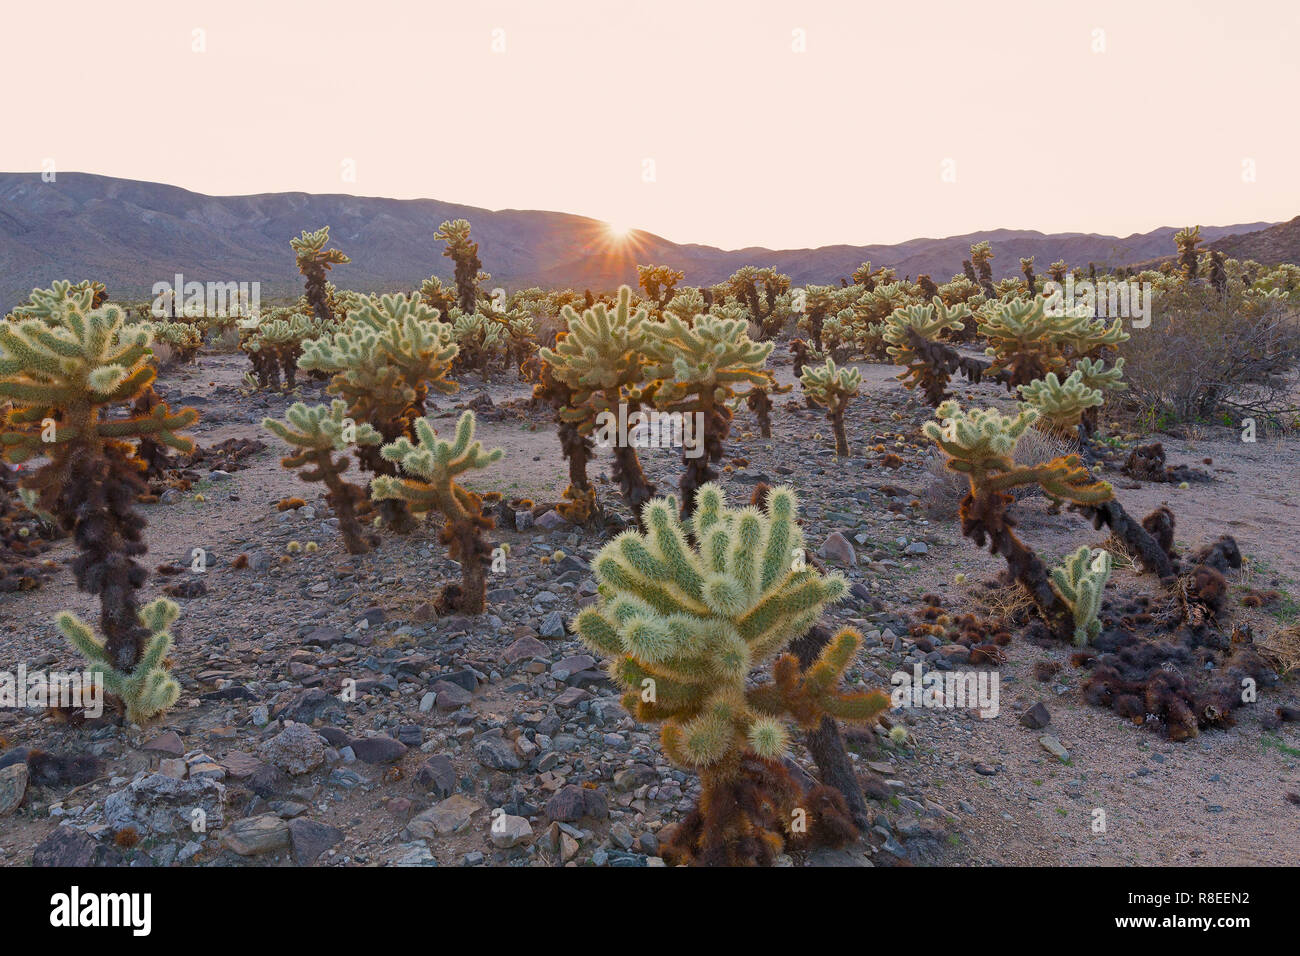 Teddy-bear cholla shrub at sunset in Joshua Tree National Park, California USA. Cholla Cactus Garden surrounded by mountains chain. - Stock Image